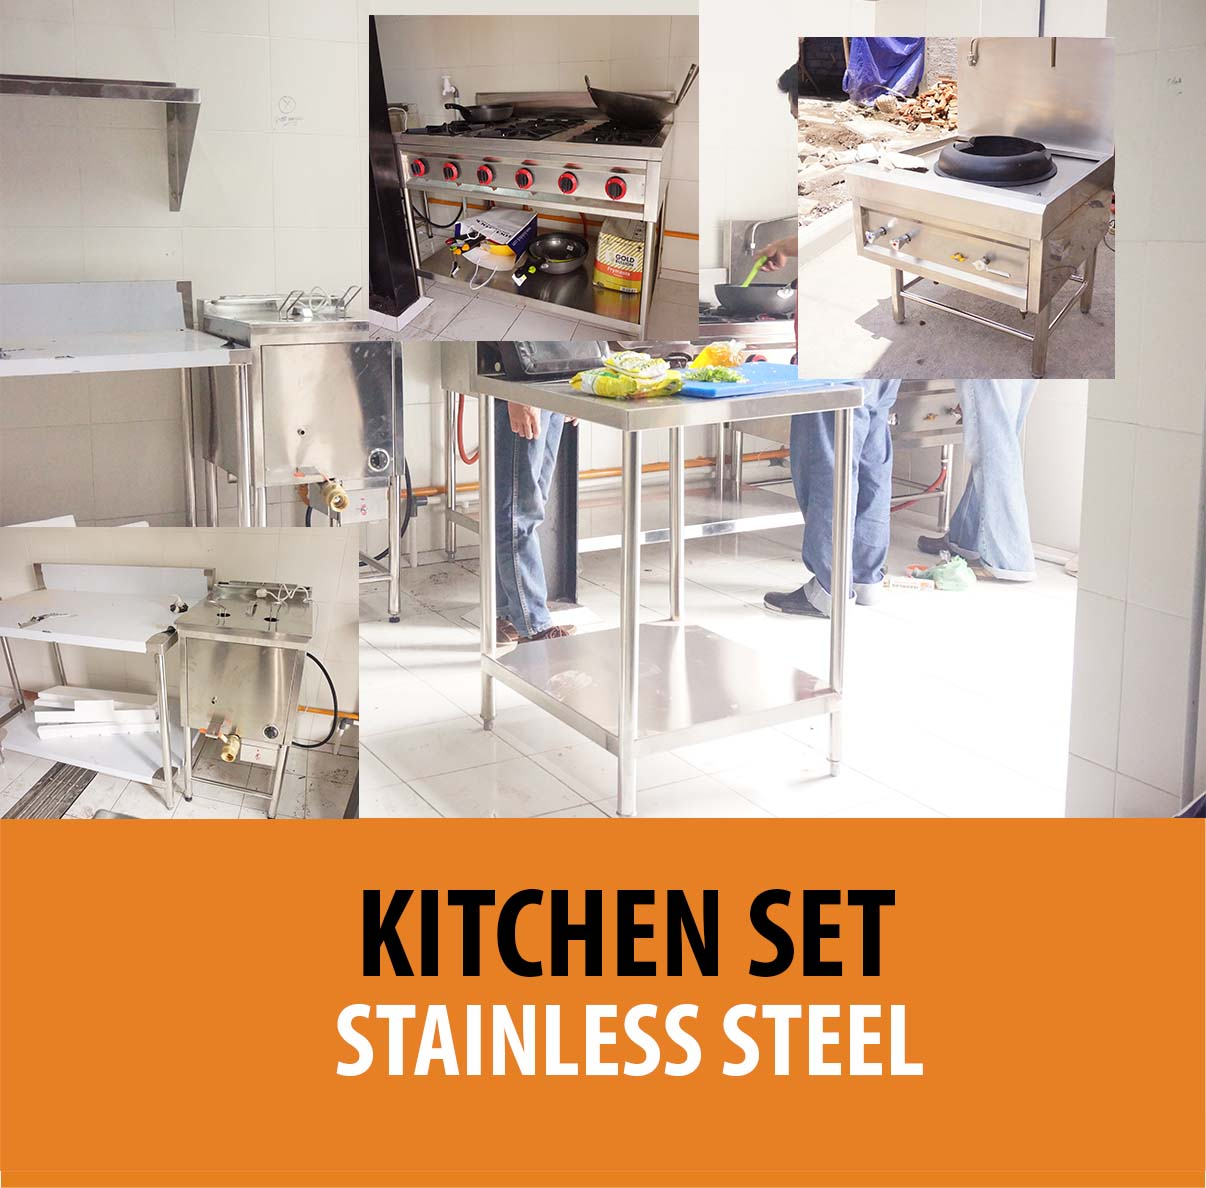 Harga kitchen set stainless per meter for Harga kitchen set per meter